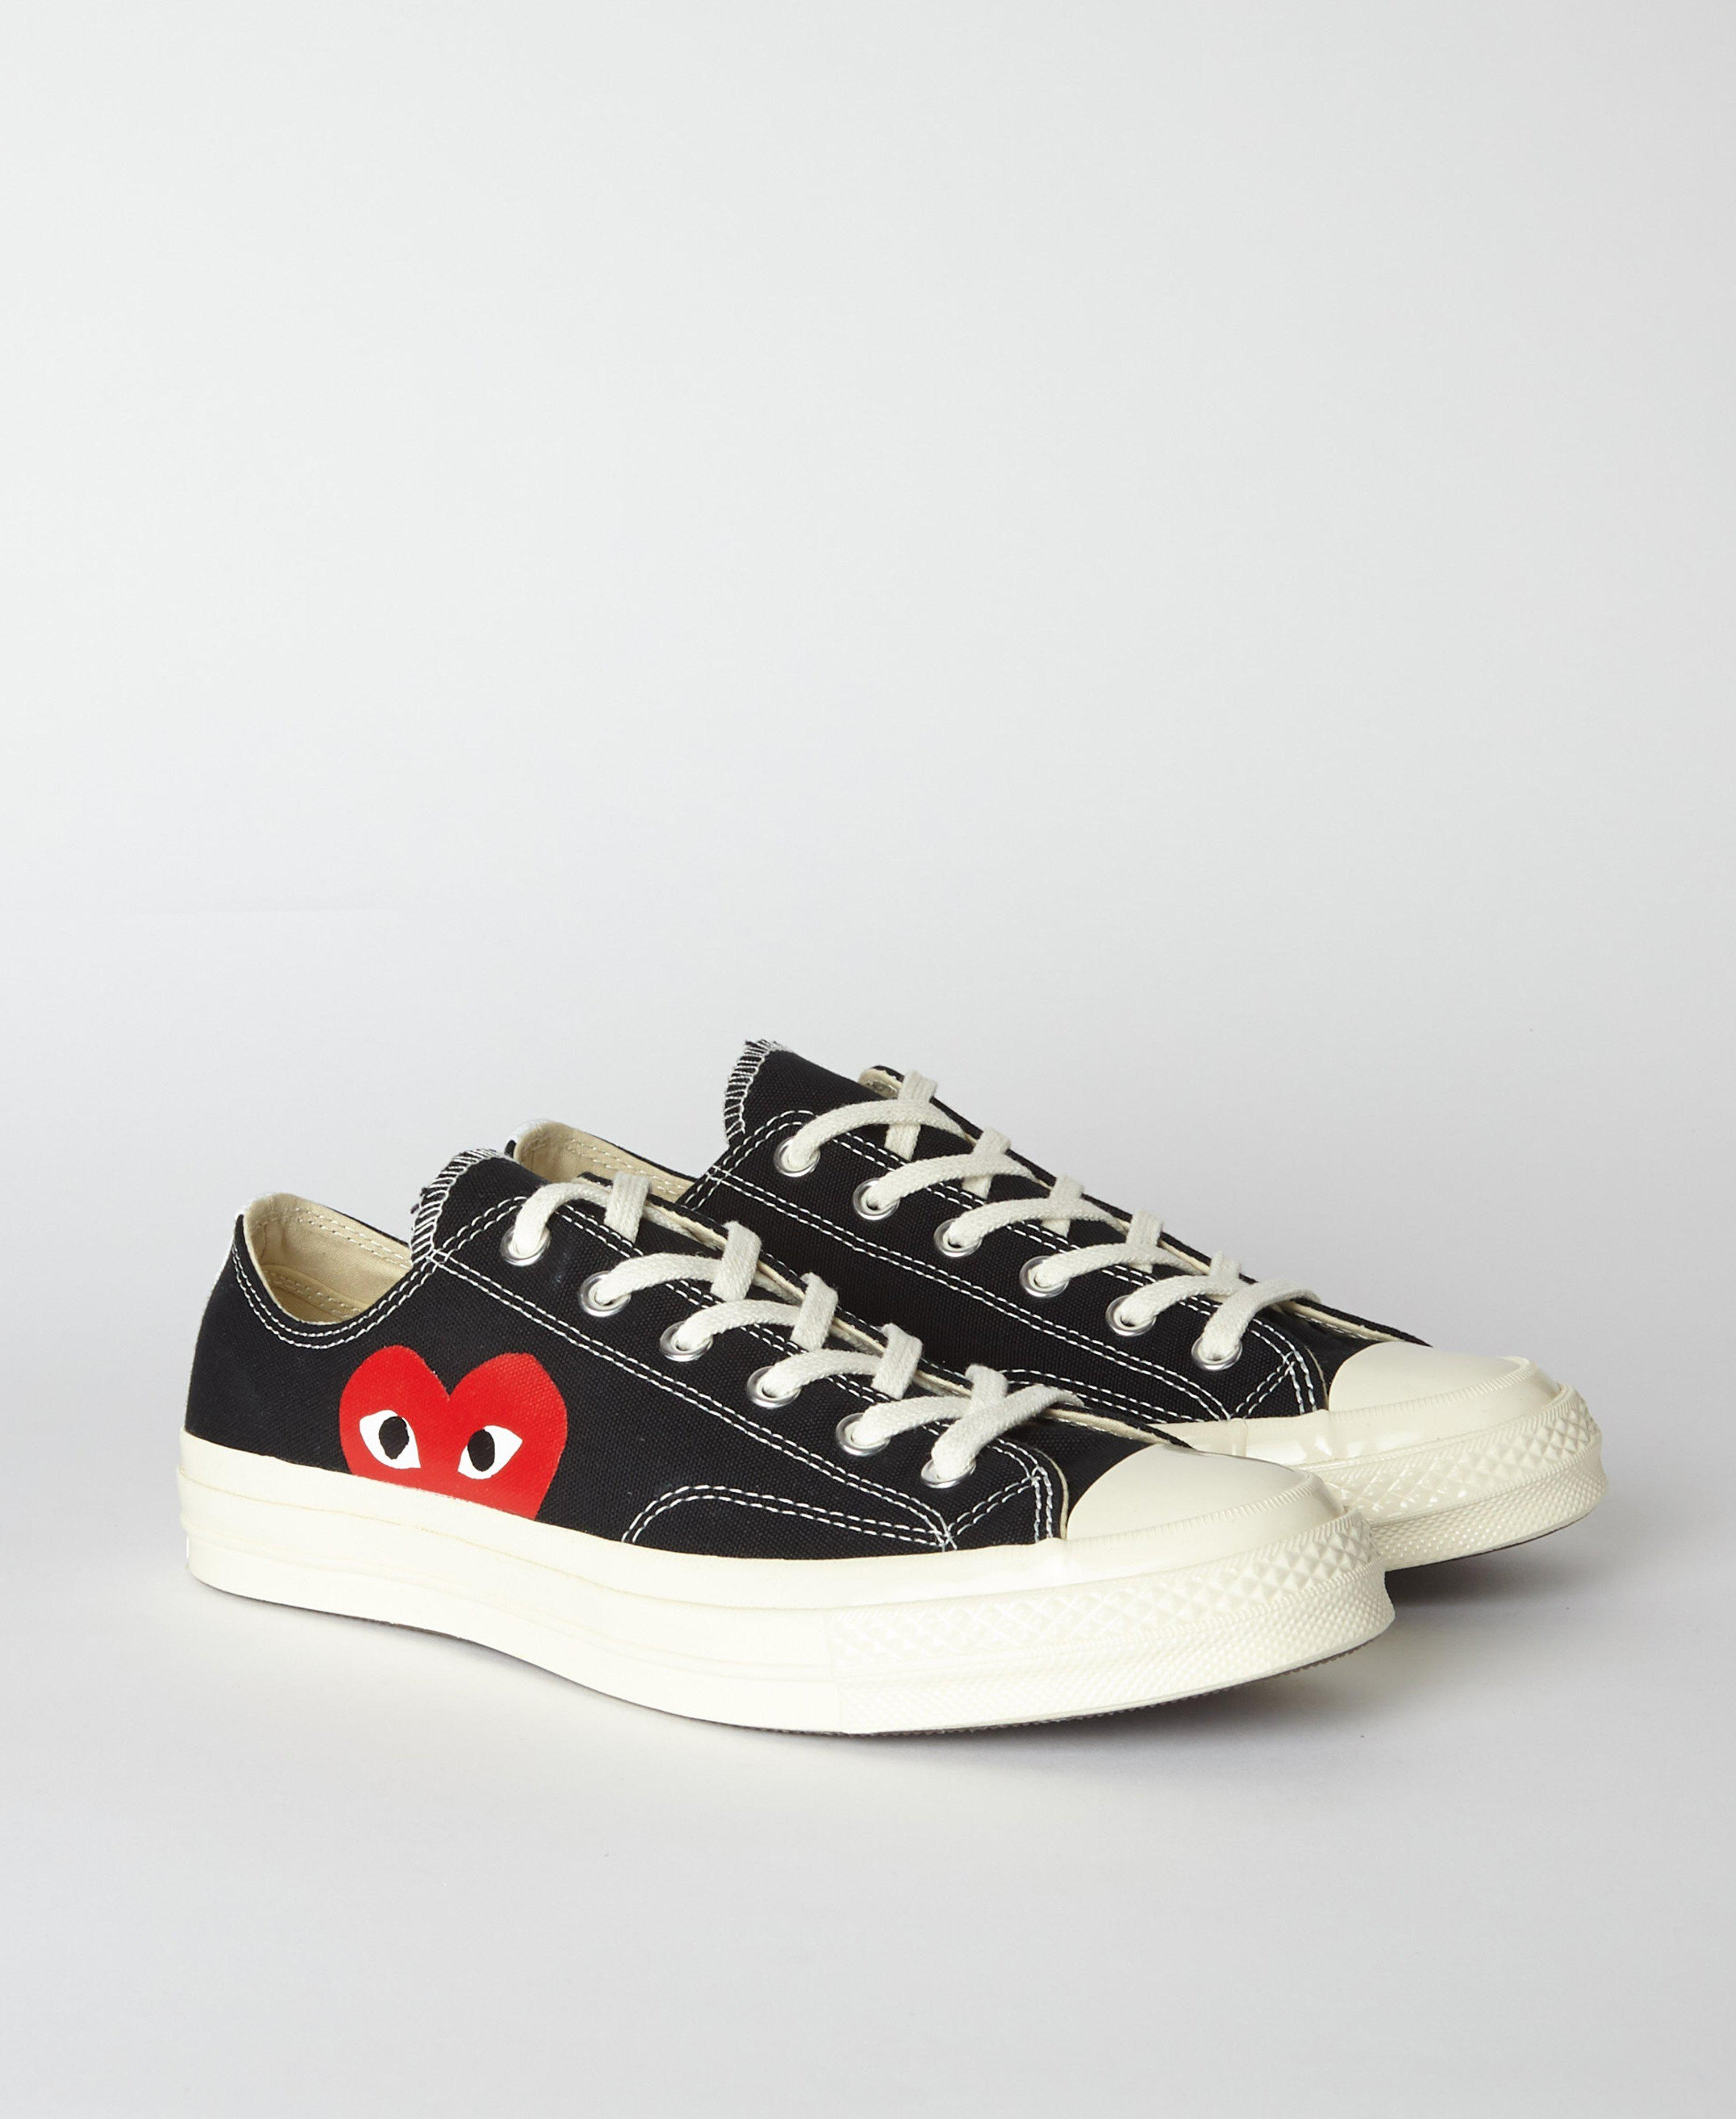 f901c97cd69ba COMME DES GARÇONS PLAY Black Play X Converse 70s Chuck Taylor All Star Low  in Black for Men - Save 24% - Lyst